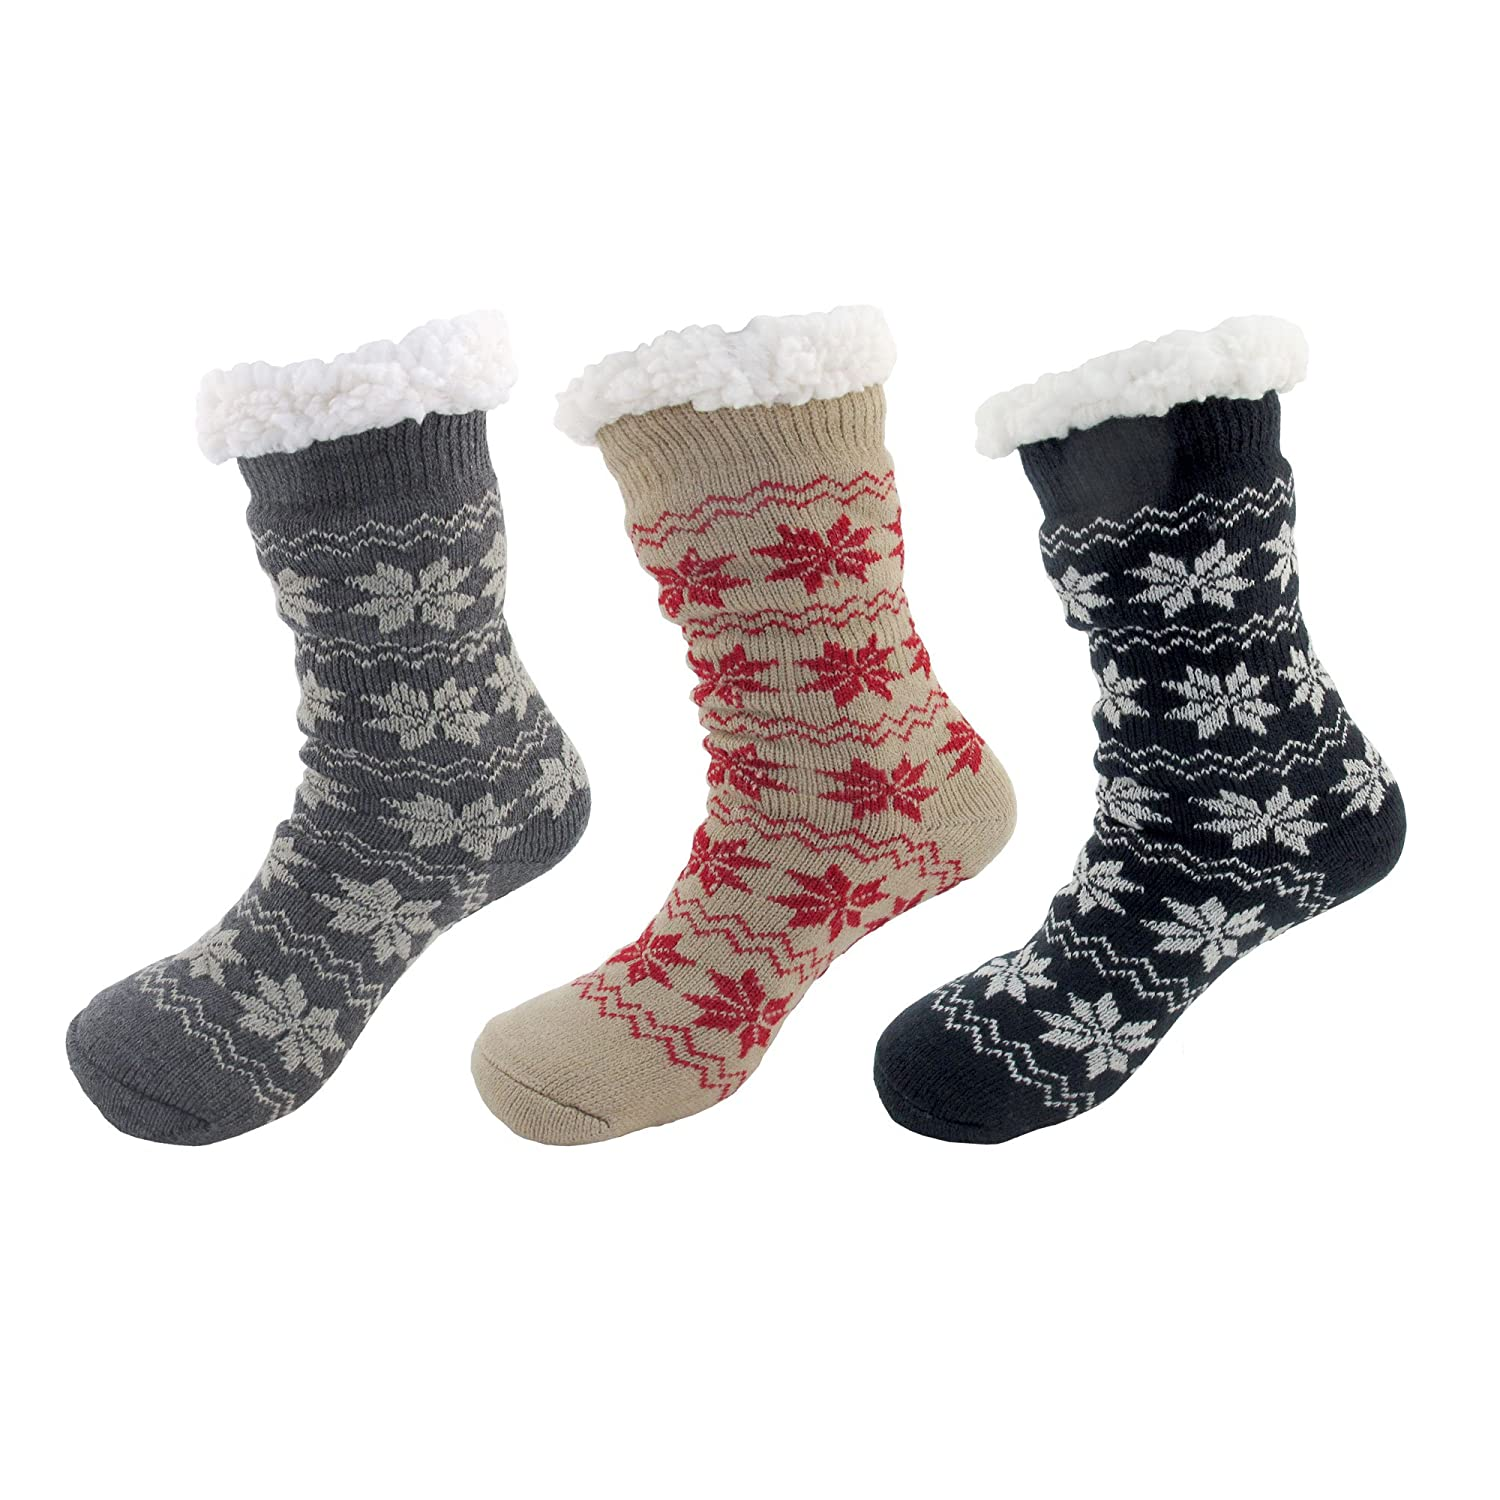 fb97fbb8a Extra Thick Soft Warm Cozy Fuzzy Thermal Cabin Fleece-lined Knitted  Non-skid Crew Socks -Assortment B - 3 pairs at Amazon Women s Clothing  store